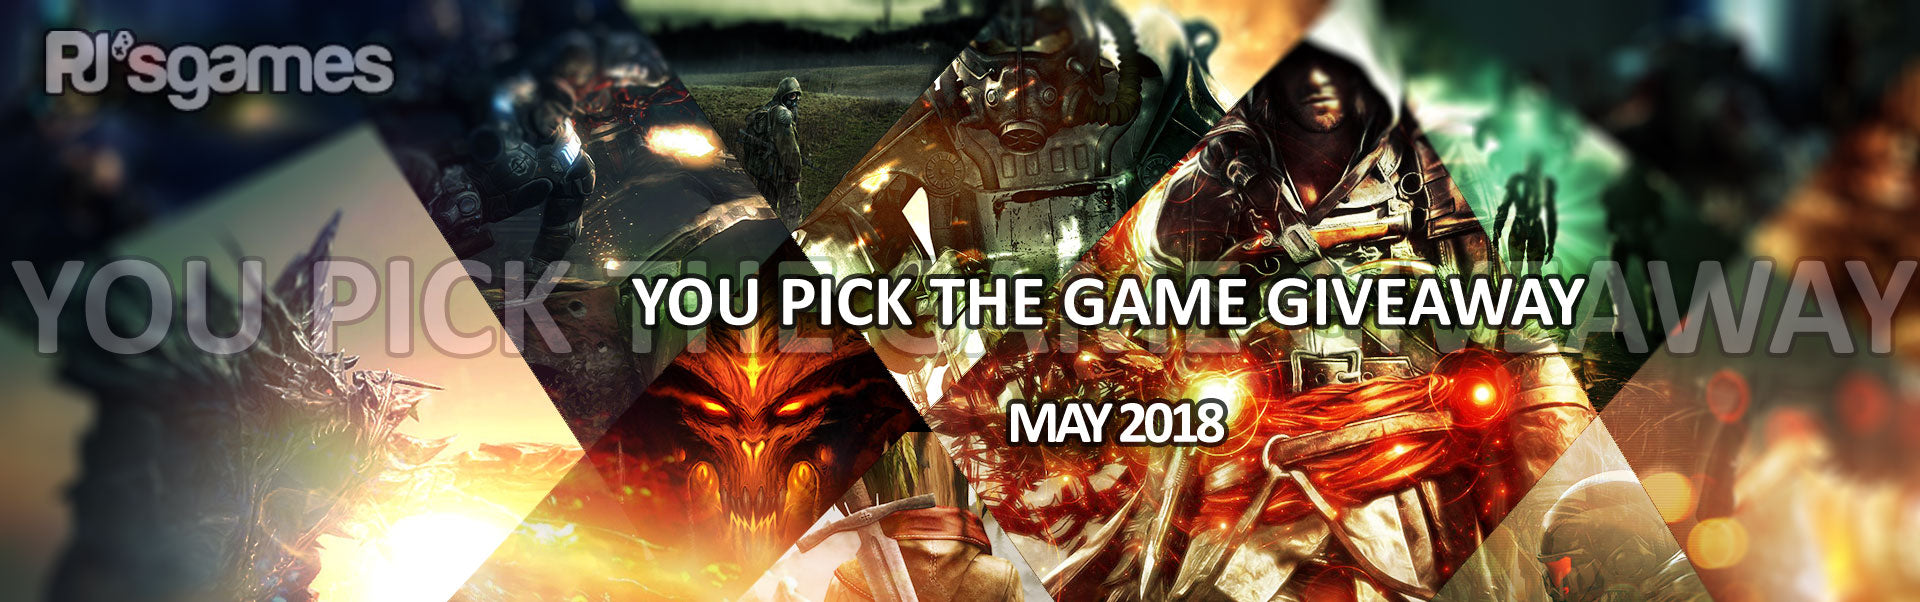 "PJ's Games ""You Pick The Game"" Giveaway for May 2018"